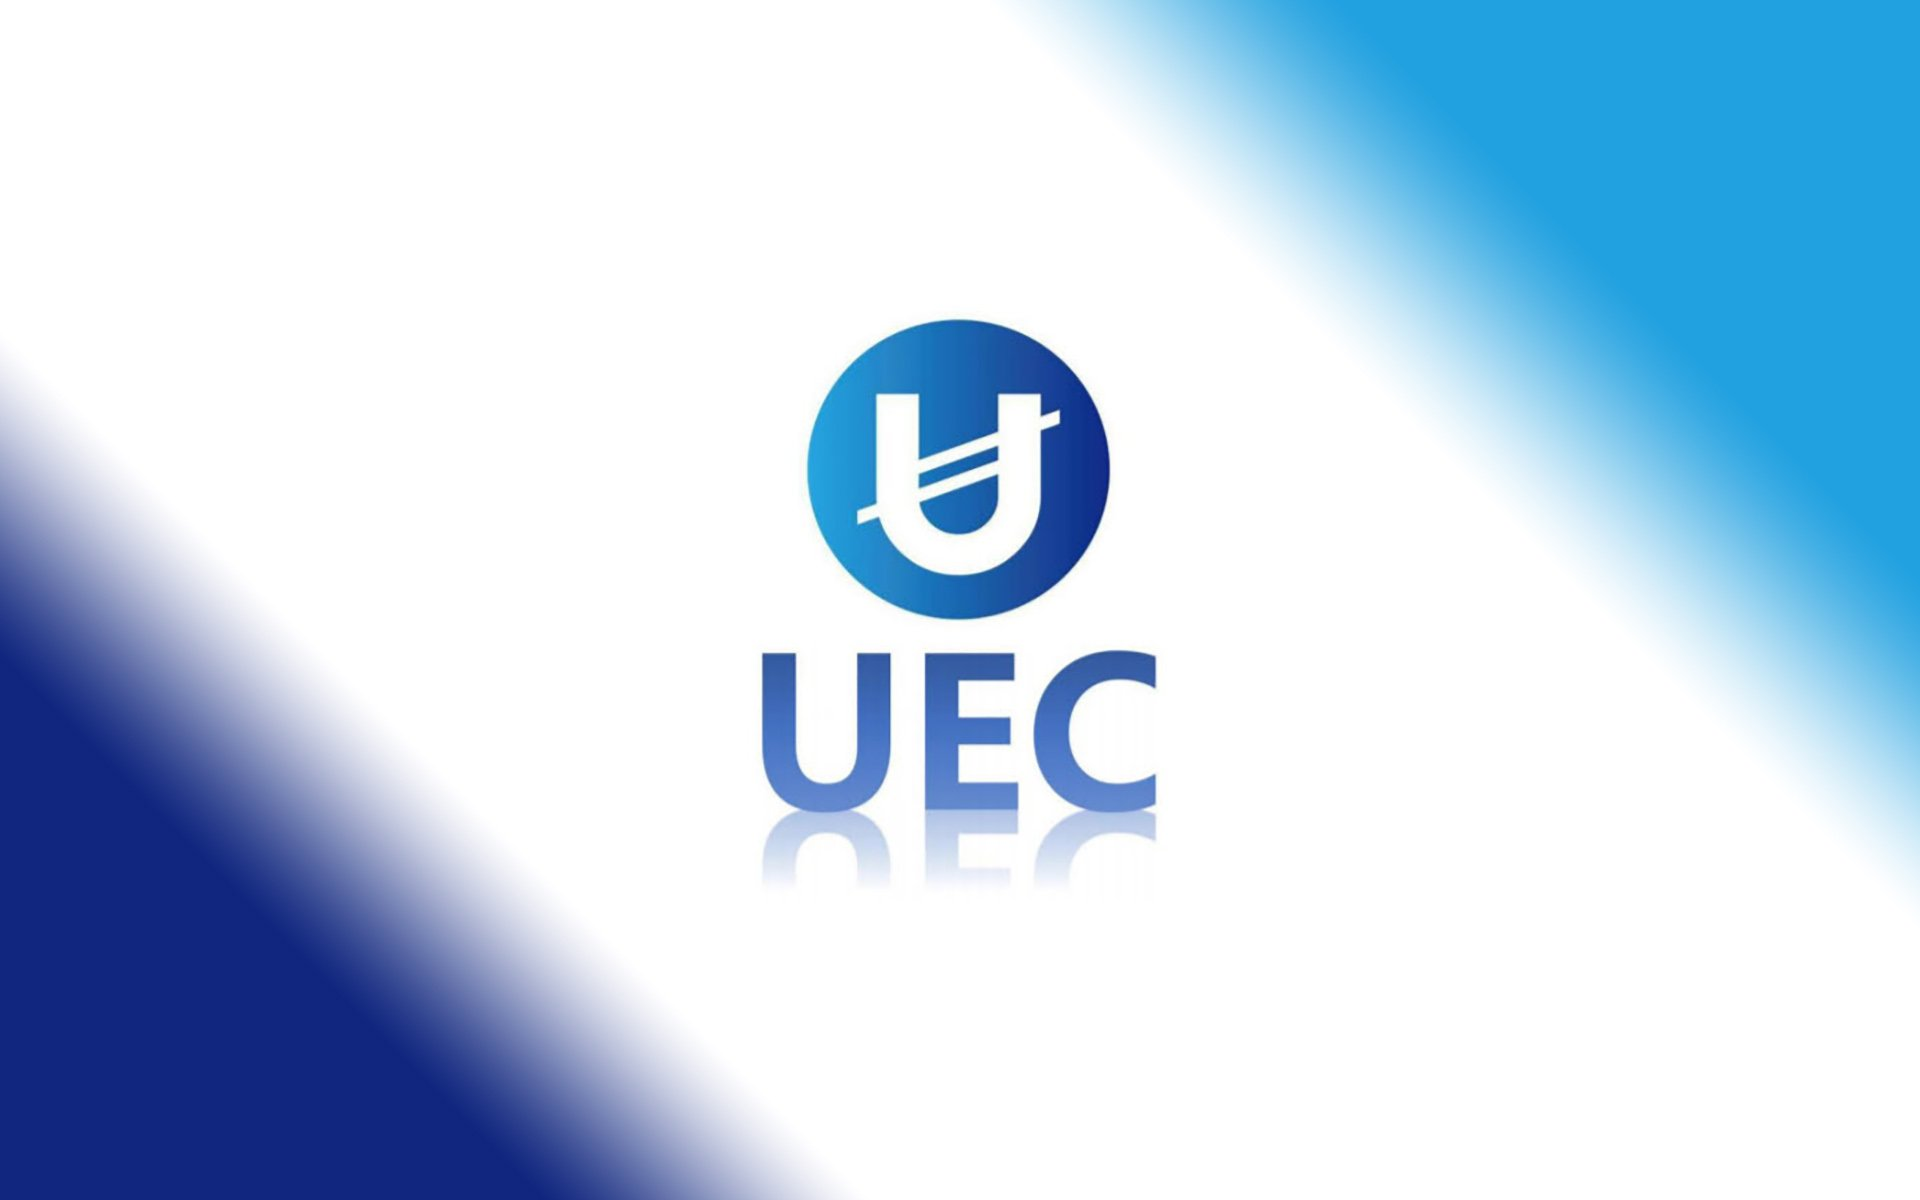 UEC Set To Launch ICO Pre-Sale – The World's First Blockchain Photovoltaic Assets & Cryptocurrency Exchange